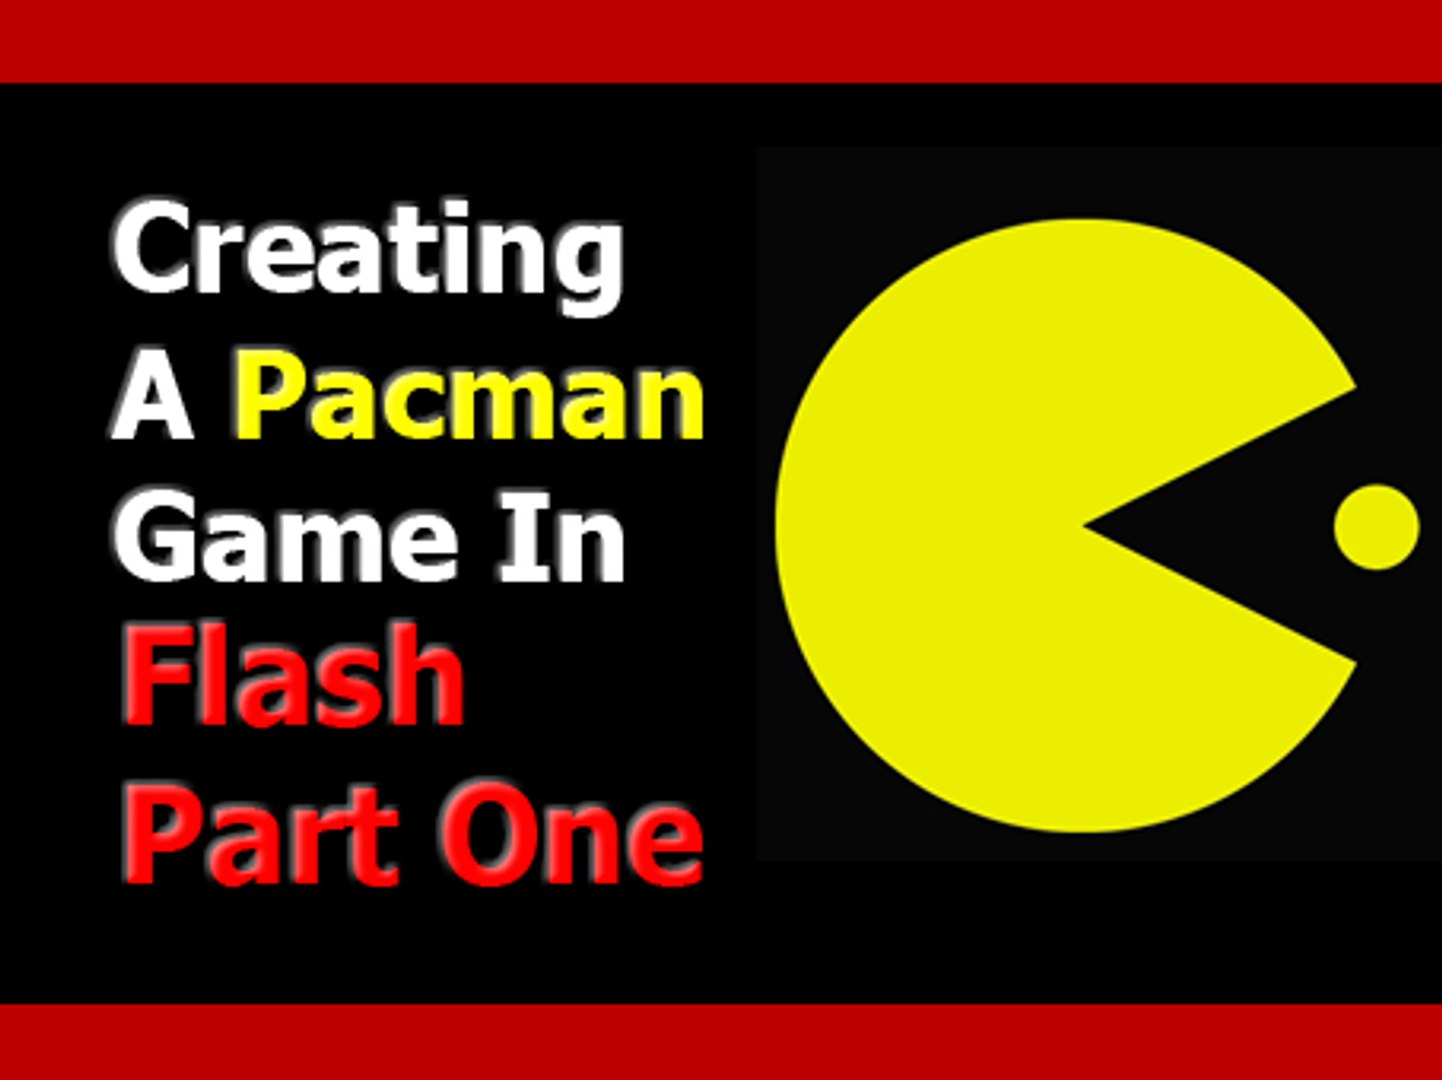 Flash Tutorial - Creating a Pacman Game Part One